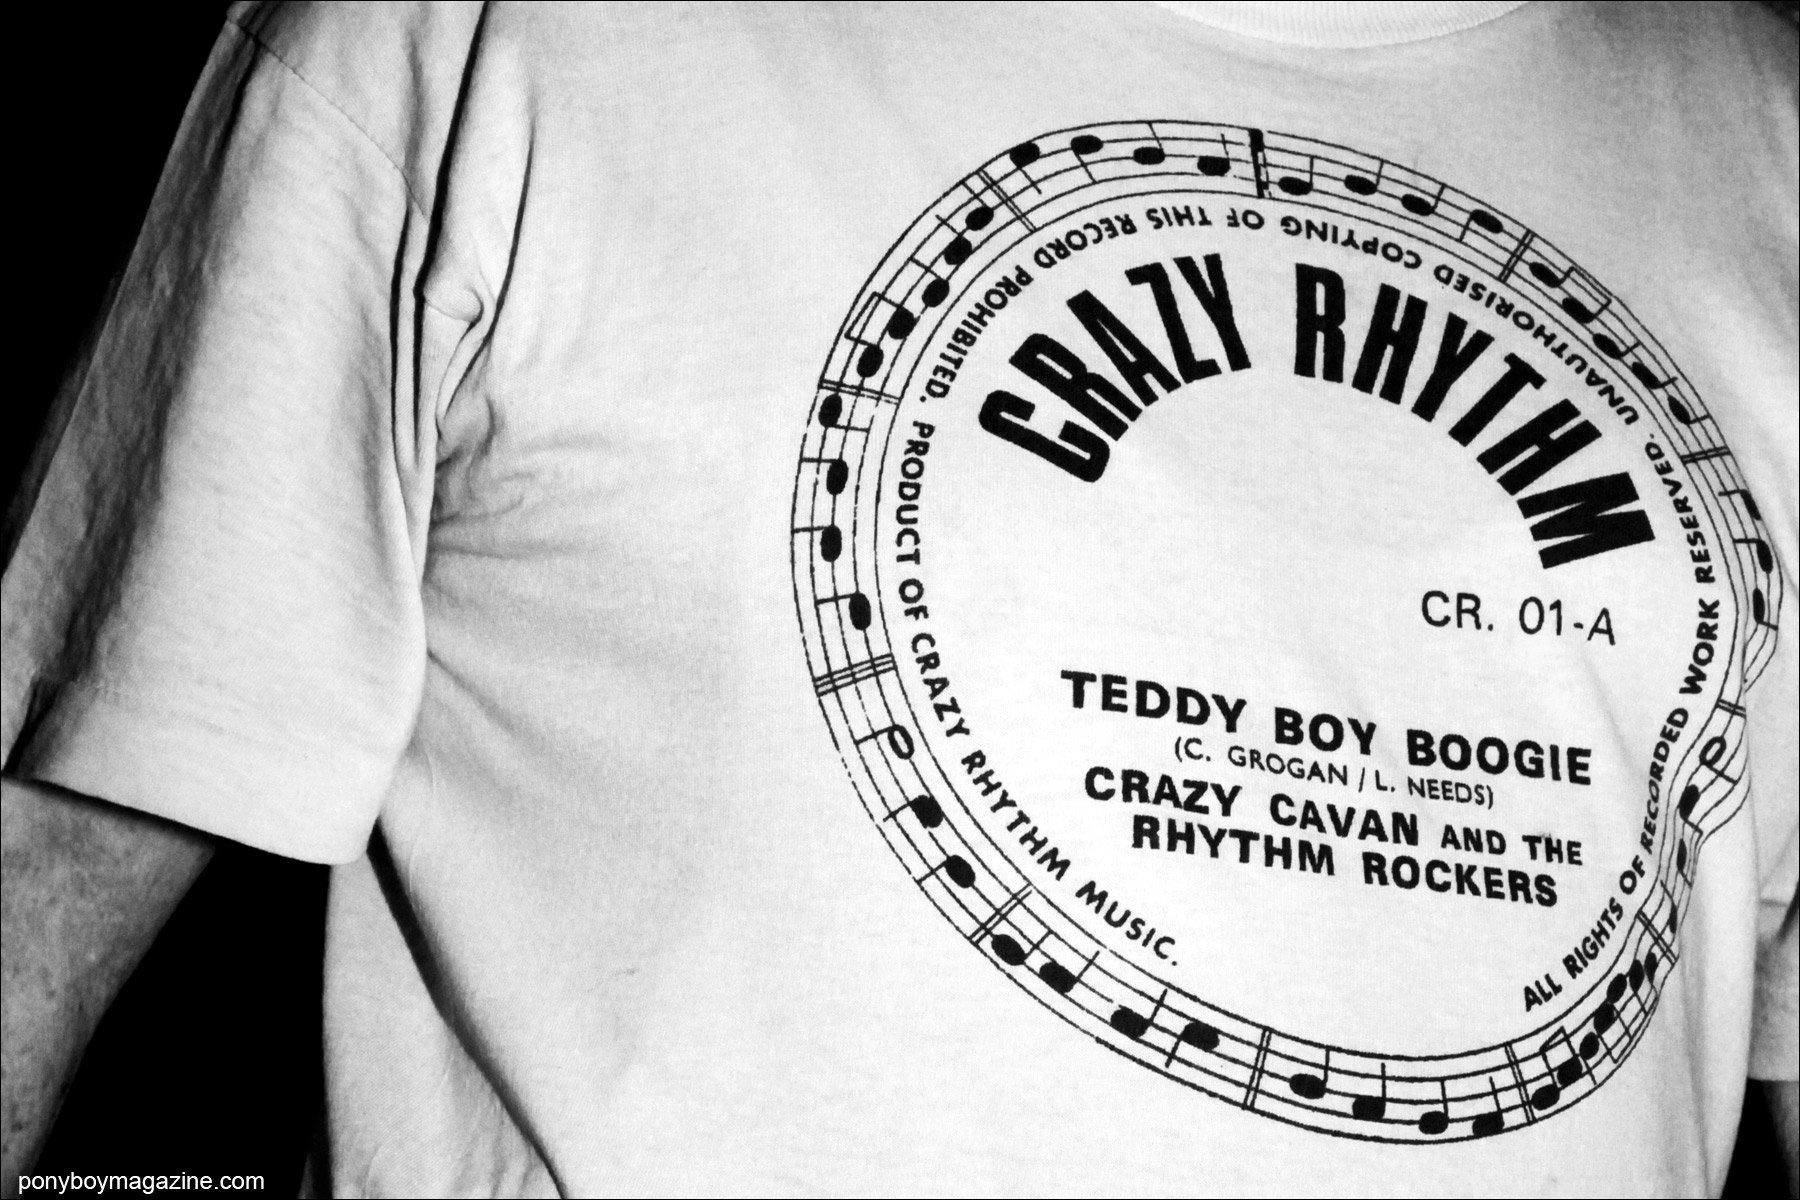 A fan's t-shirt of Crazy Cavan and The Rhythm Rockers, snapped at Tom Ingram's Viva Las Vegas by Alexander Thompson for Ponyboy Magazine.